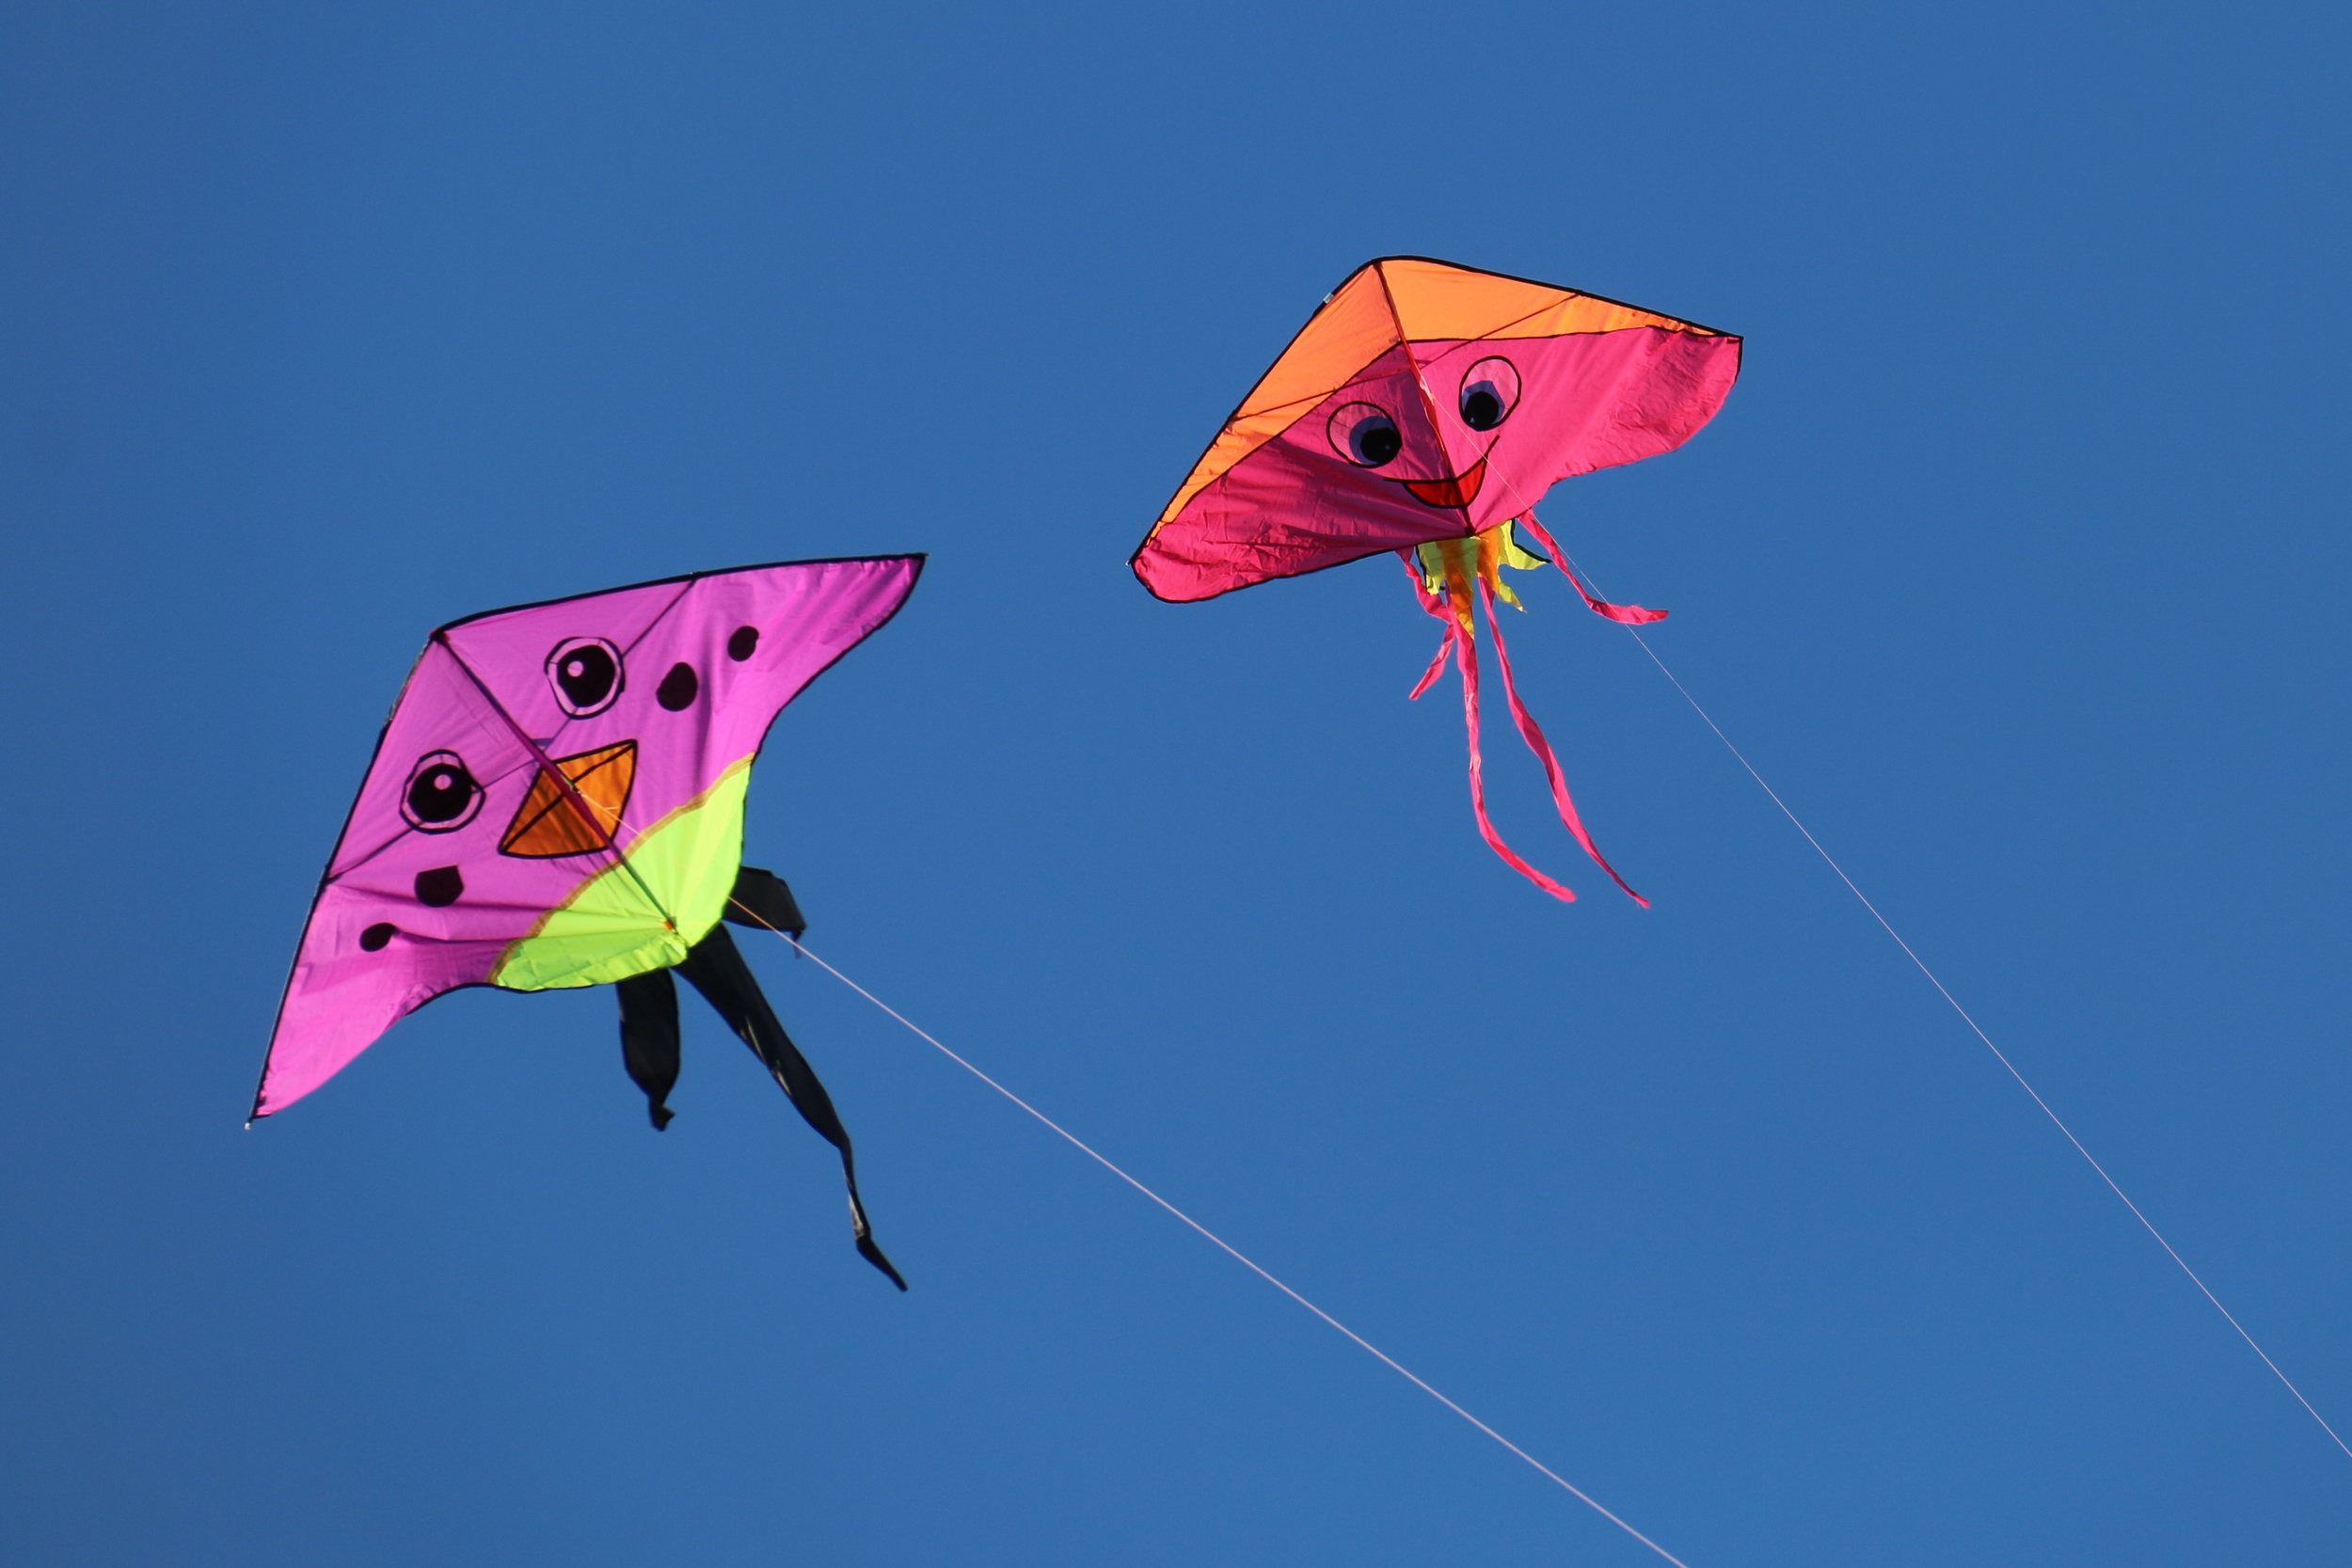 Kite Festival - April 27th 2-3:30pm & 28th 1:30-3pm 2019 View Morro Bay's Kite Festival while cruising the bay aboard the Dos Osos boat. Kids and families welcome aboard to see the Kite Festival like never before!Two days, two trips available, at 2pm Sat & 1:30pm Sun.